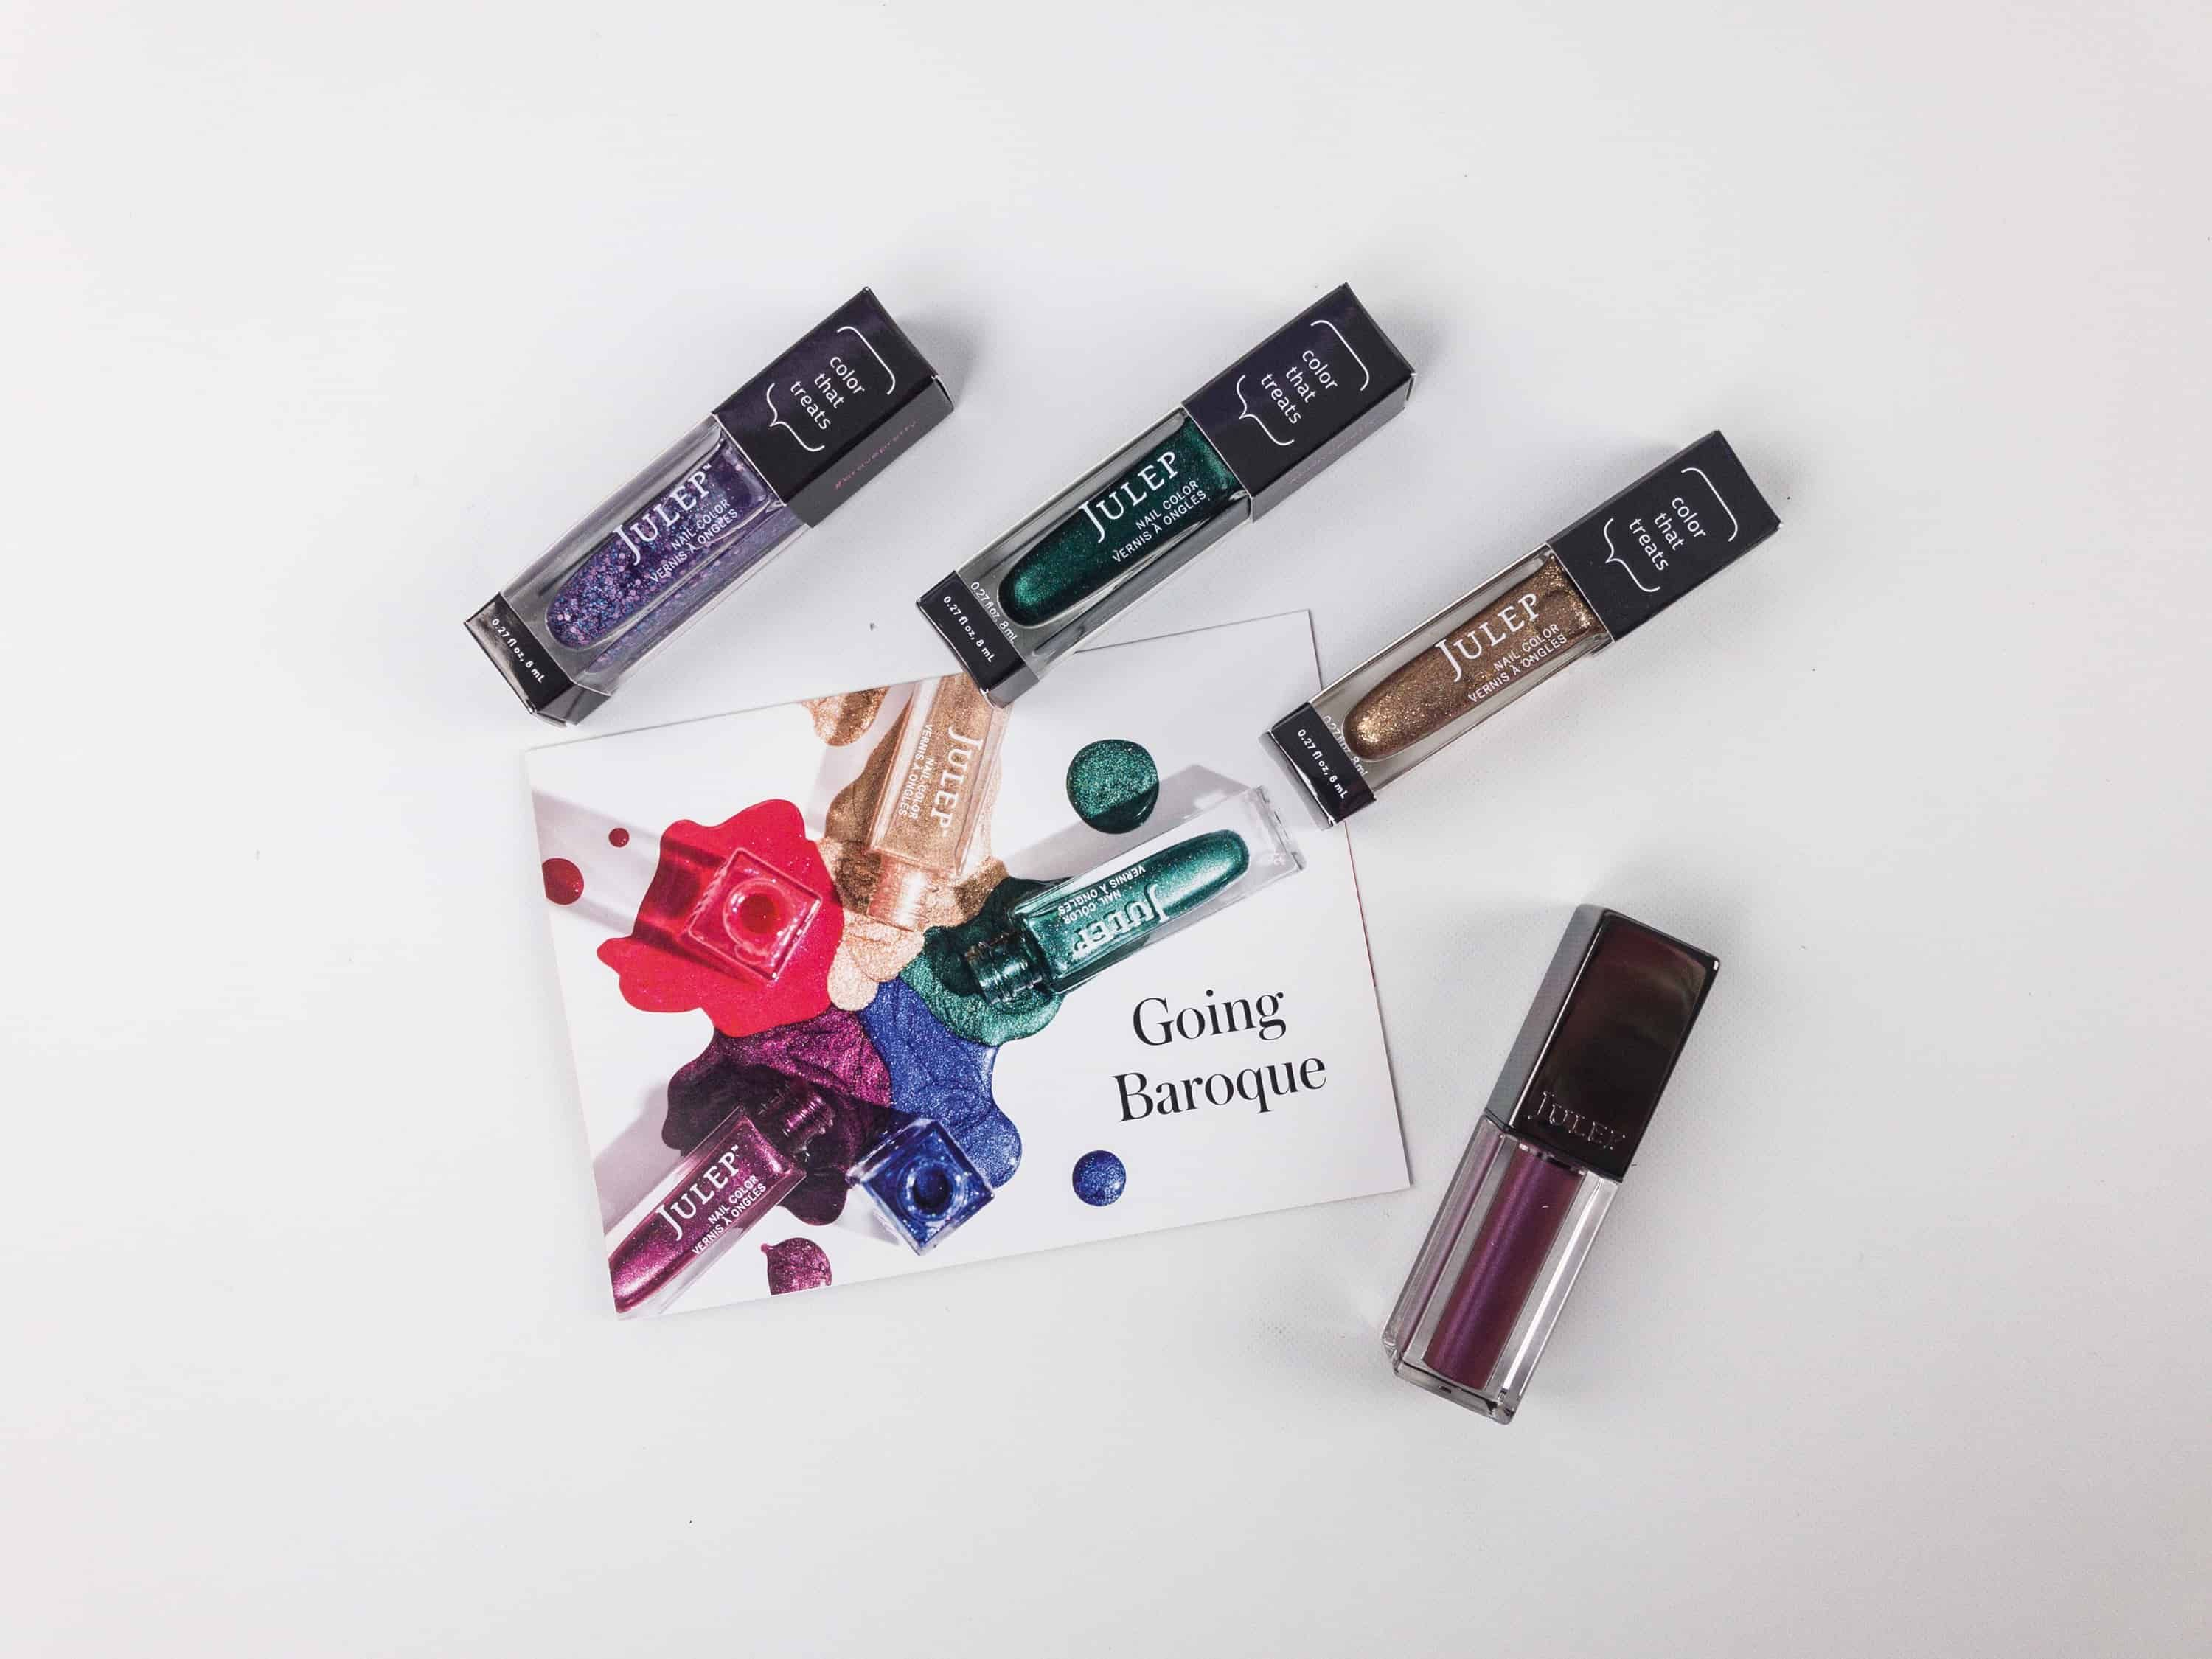 Three nail polish colors + a lip mousse were included in my December ...